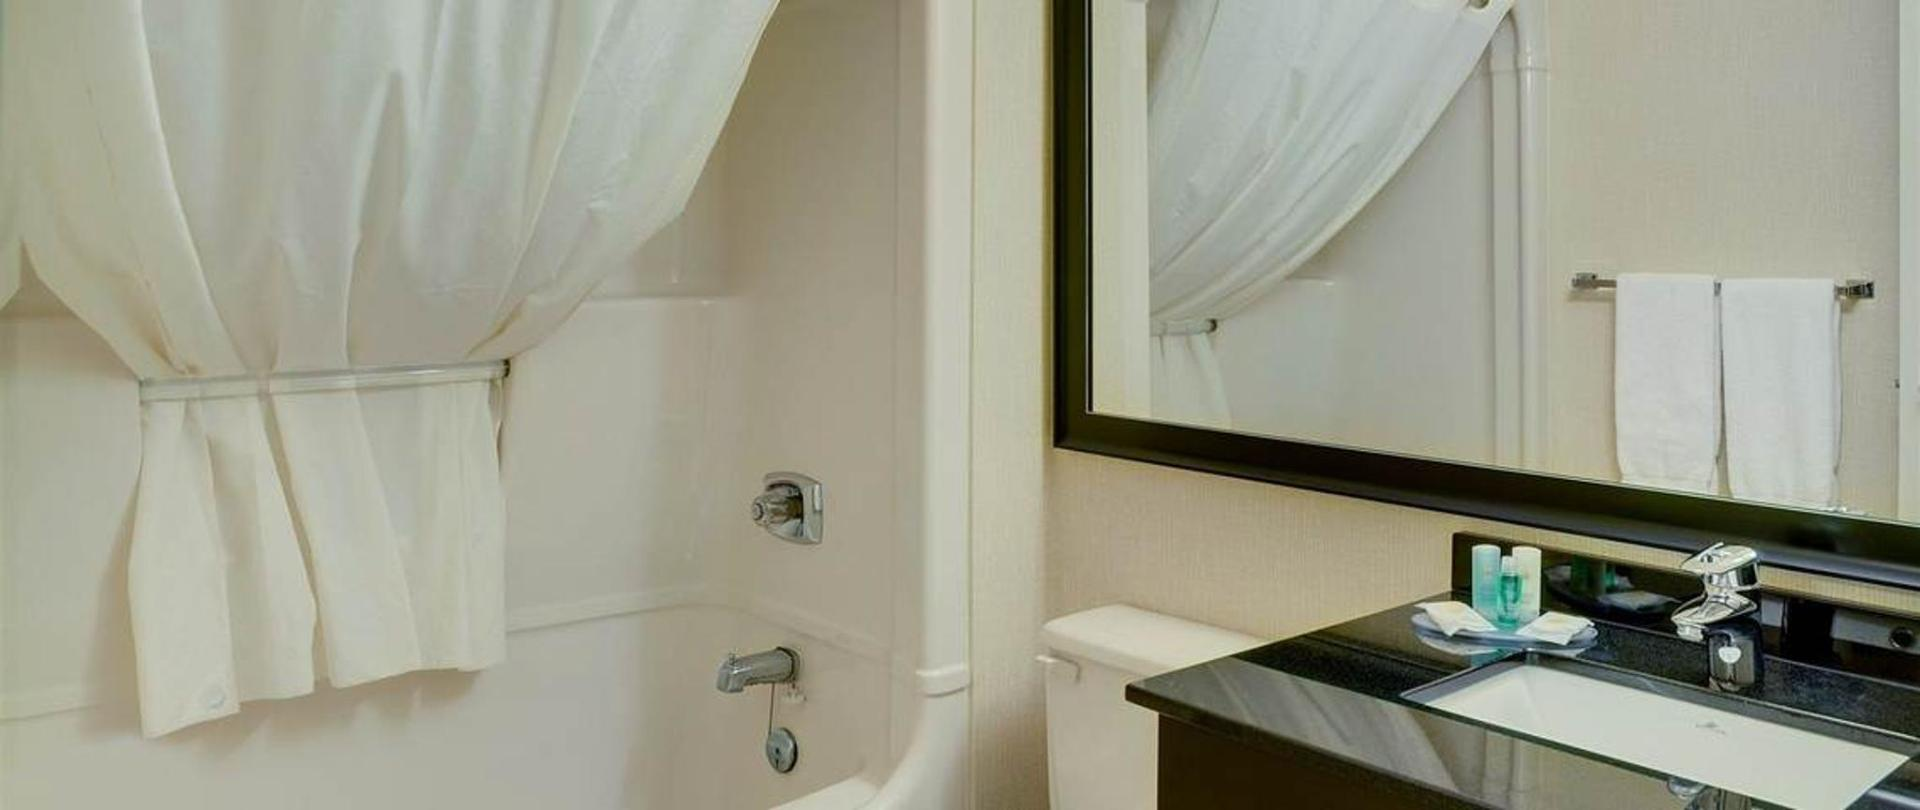 guest-bathroom-with-curved-shower-rod.jpg.1140x481_default.jpg